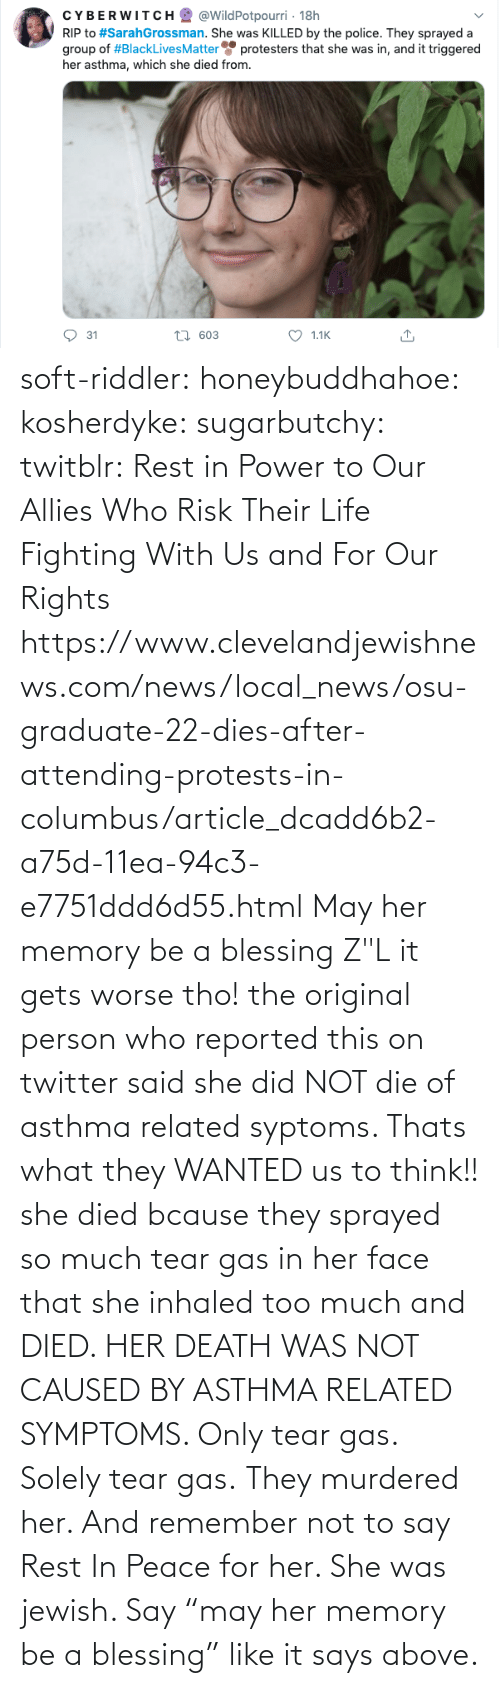 "Life, News, and Too Much: soft-riddler:  honeybuddhahoe:  kosherdyke:  sugarbutchy:  twitblr: Rest in Power to Our Allies Who Risk Their Life Fighting With Us and For Our Rights https://www.clevelandjewishnews.com/news/local_news/osu-graduate-22-dies-after-attending-protests-in-columbus/article_dcadd6b2-a75d-11ea-94c3-e7751ddd6d55.html    May her memory be a blessing Z""L  it gets worse tho! the original person who reported this on twitter said she did NOT die of asthma related syptoms. Thats what they WANTED us to think!! she died bcause they sprayed so much tear gas in her face that she inhaled too much and DIED. HER DEATH WAS NOT CAUSED BY ASTHMA RELATED SYMPTOMS. Only tear gas. Solely tear gas. They murdered her.     And remember not to say Rest In Peace for her. She was jewish. Say ""may her memory be a blessing"" like it says above."